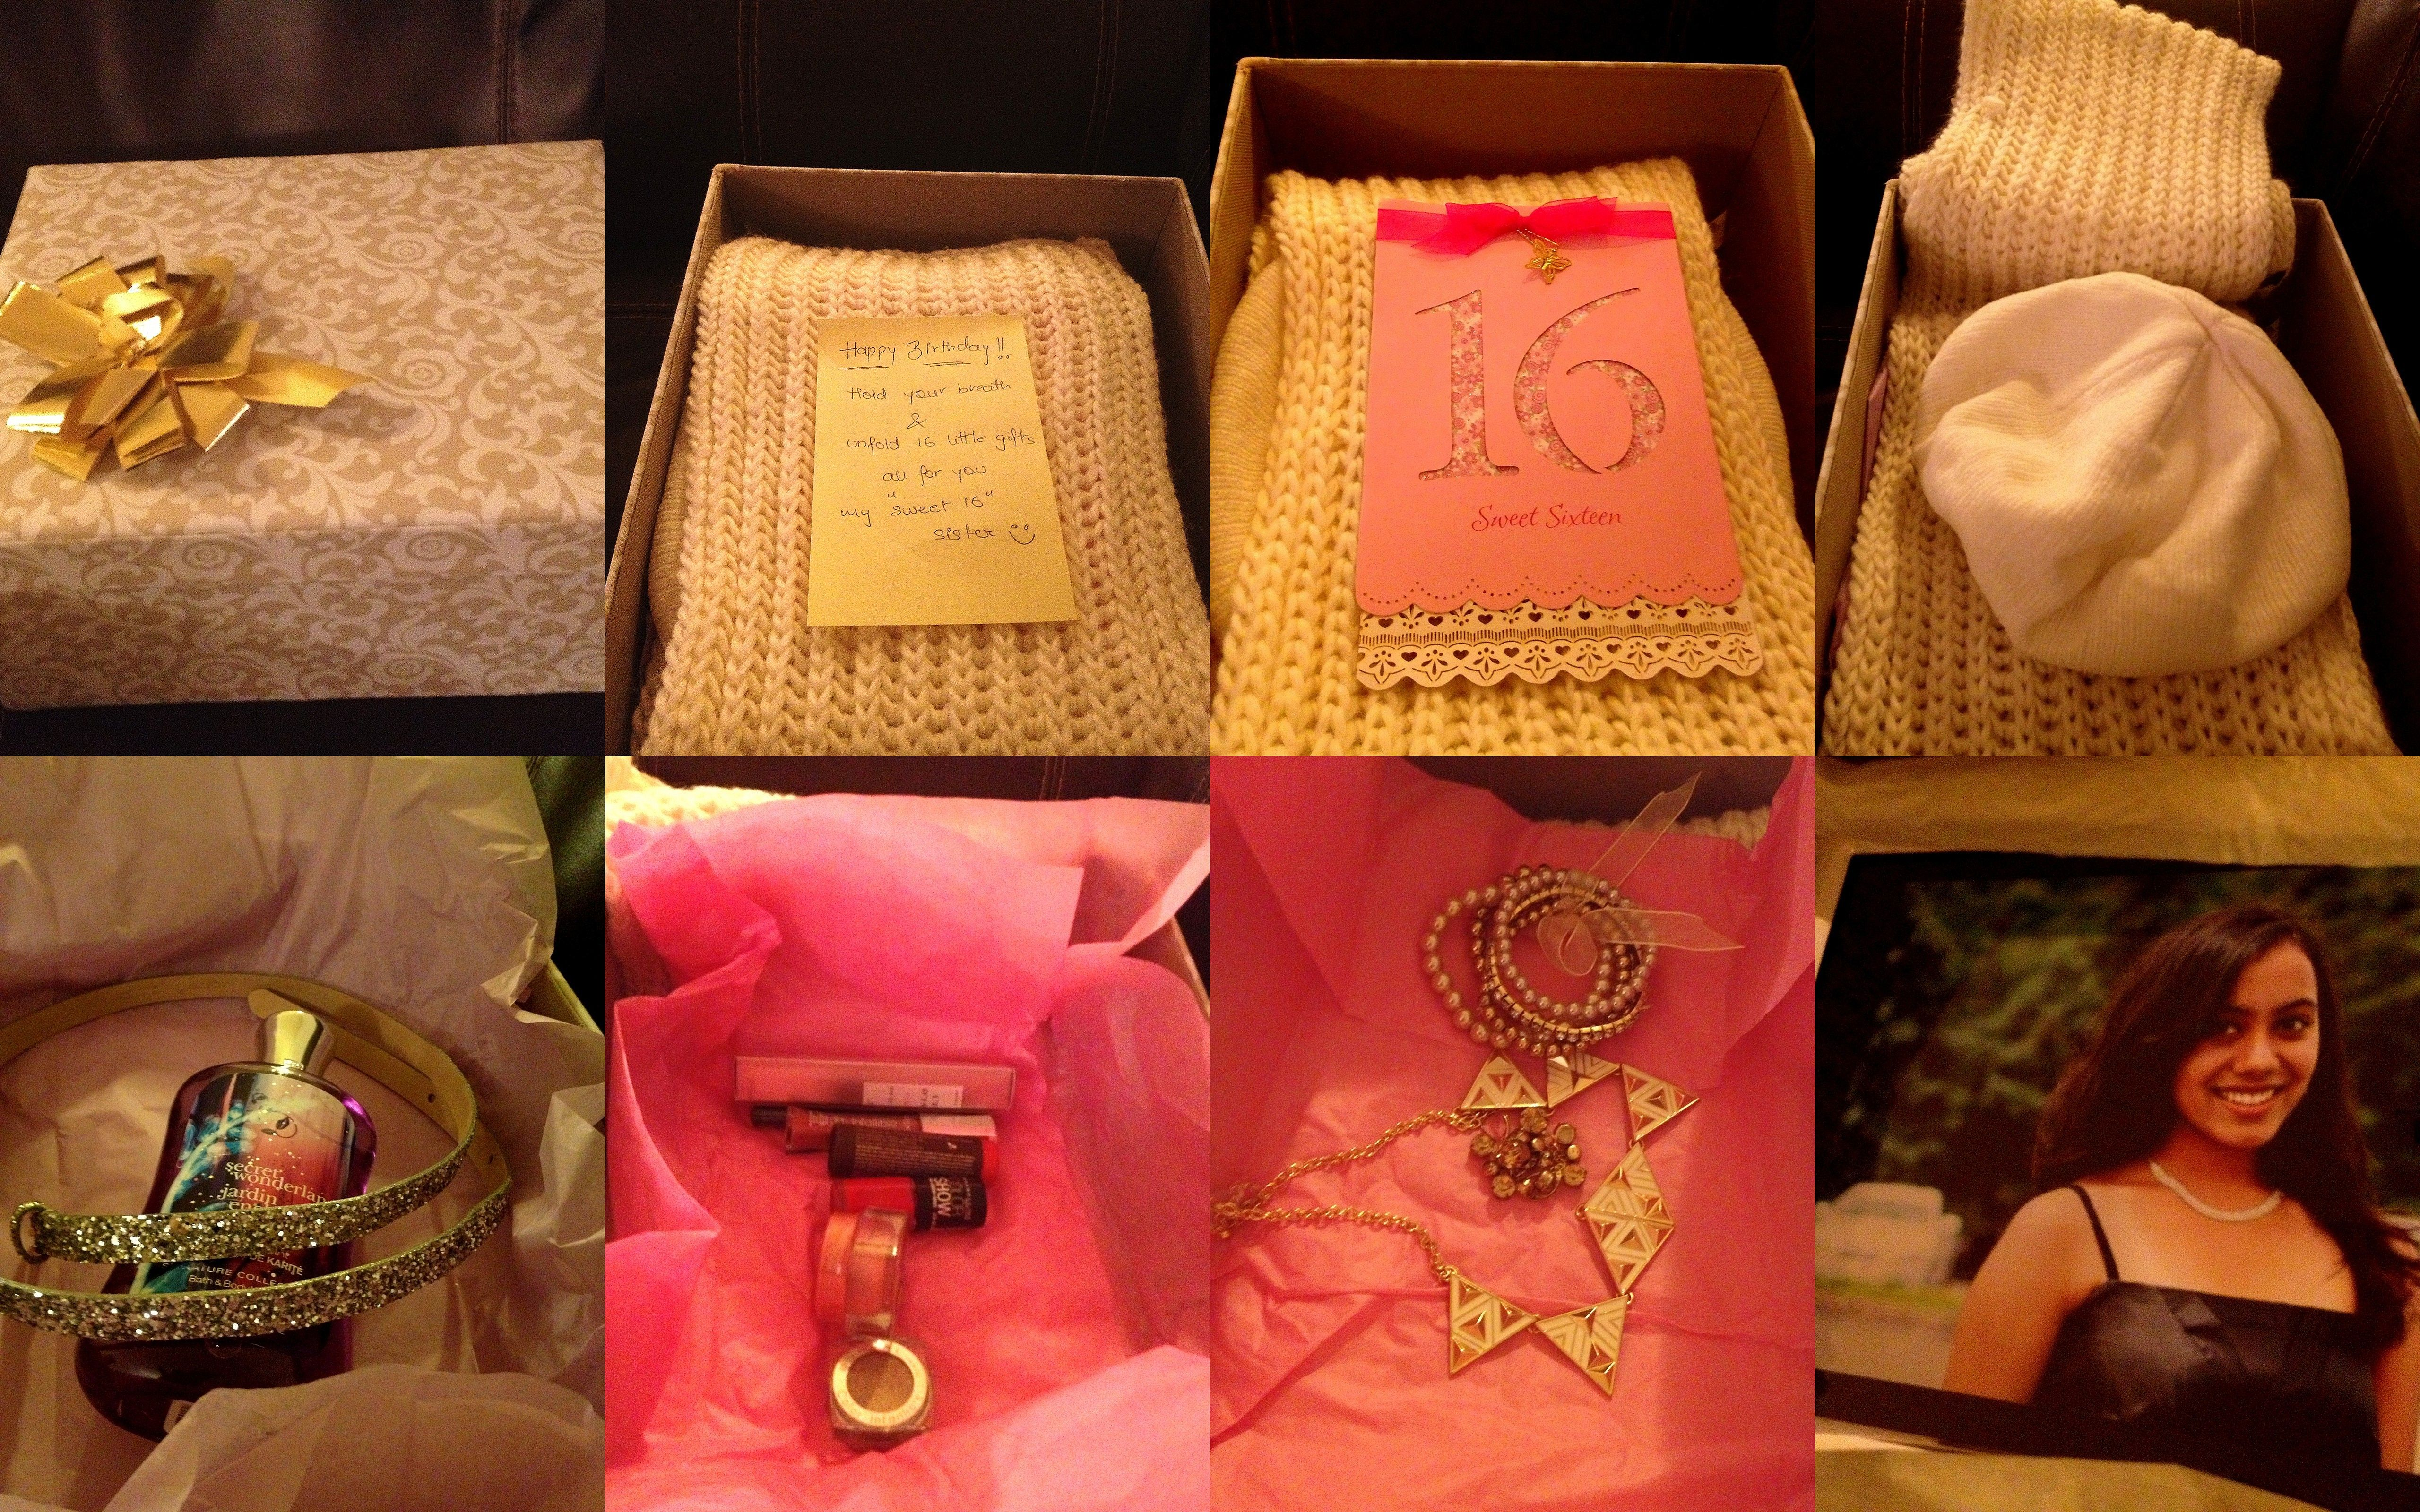 Sweet 16 Gift Idea16 Small Gifts Wrapped In A Cute Storage Boxwrapped Layered By Using Woolen Scarf